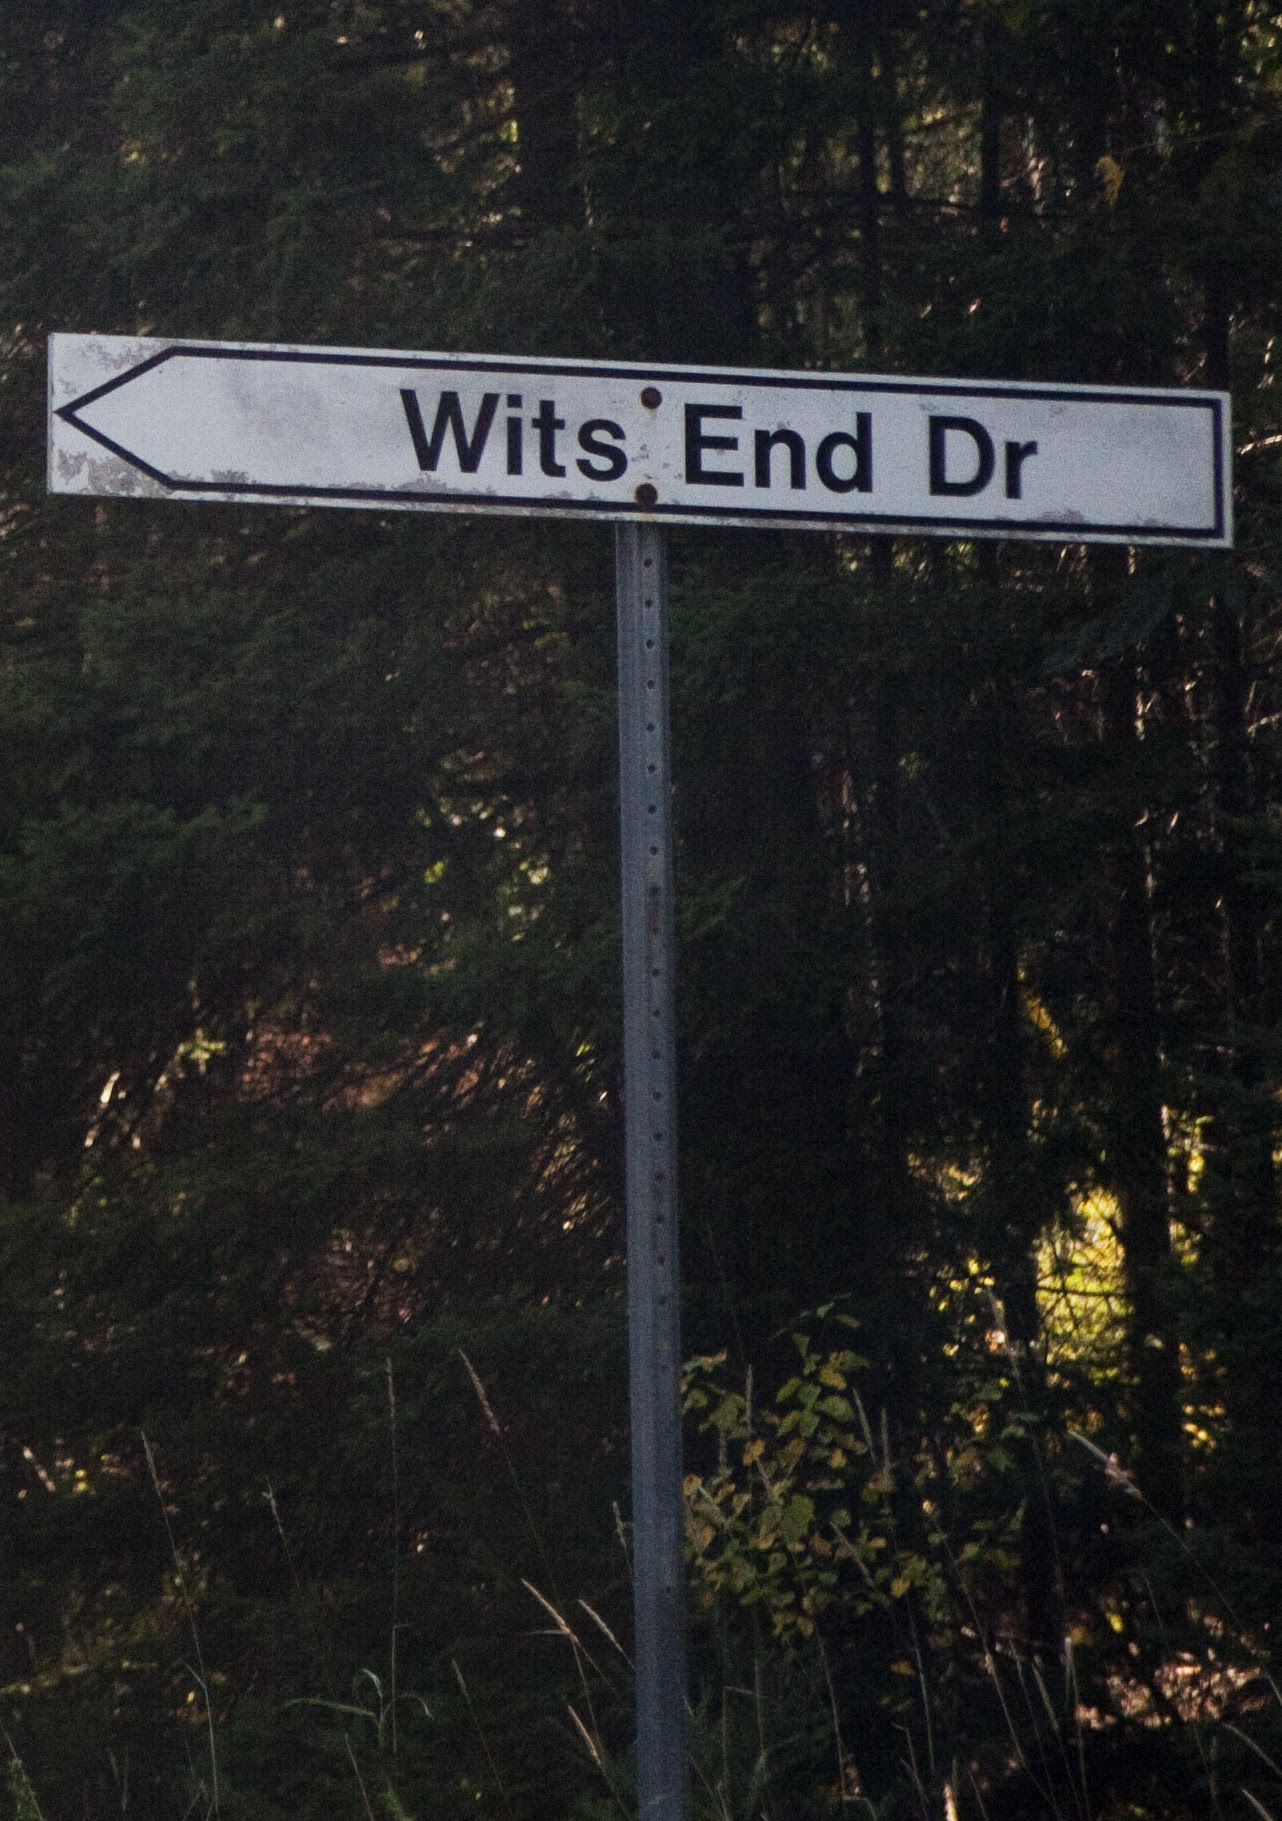 Wits end drive